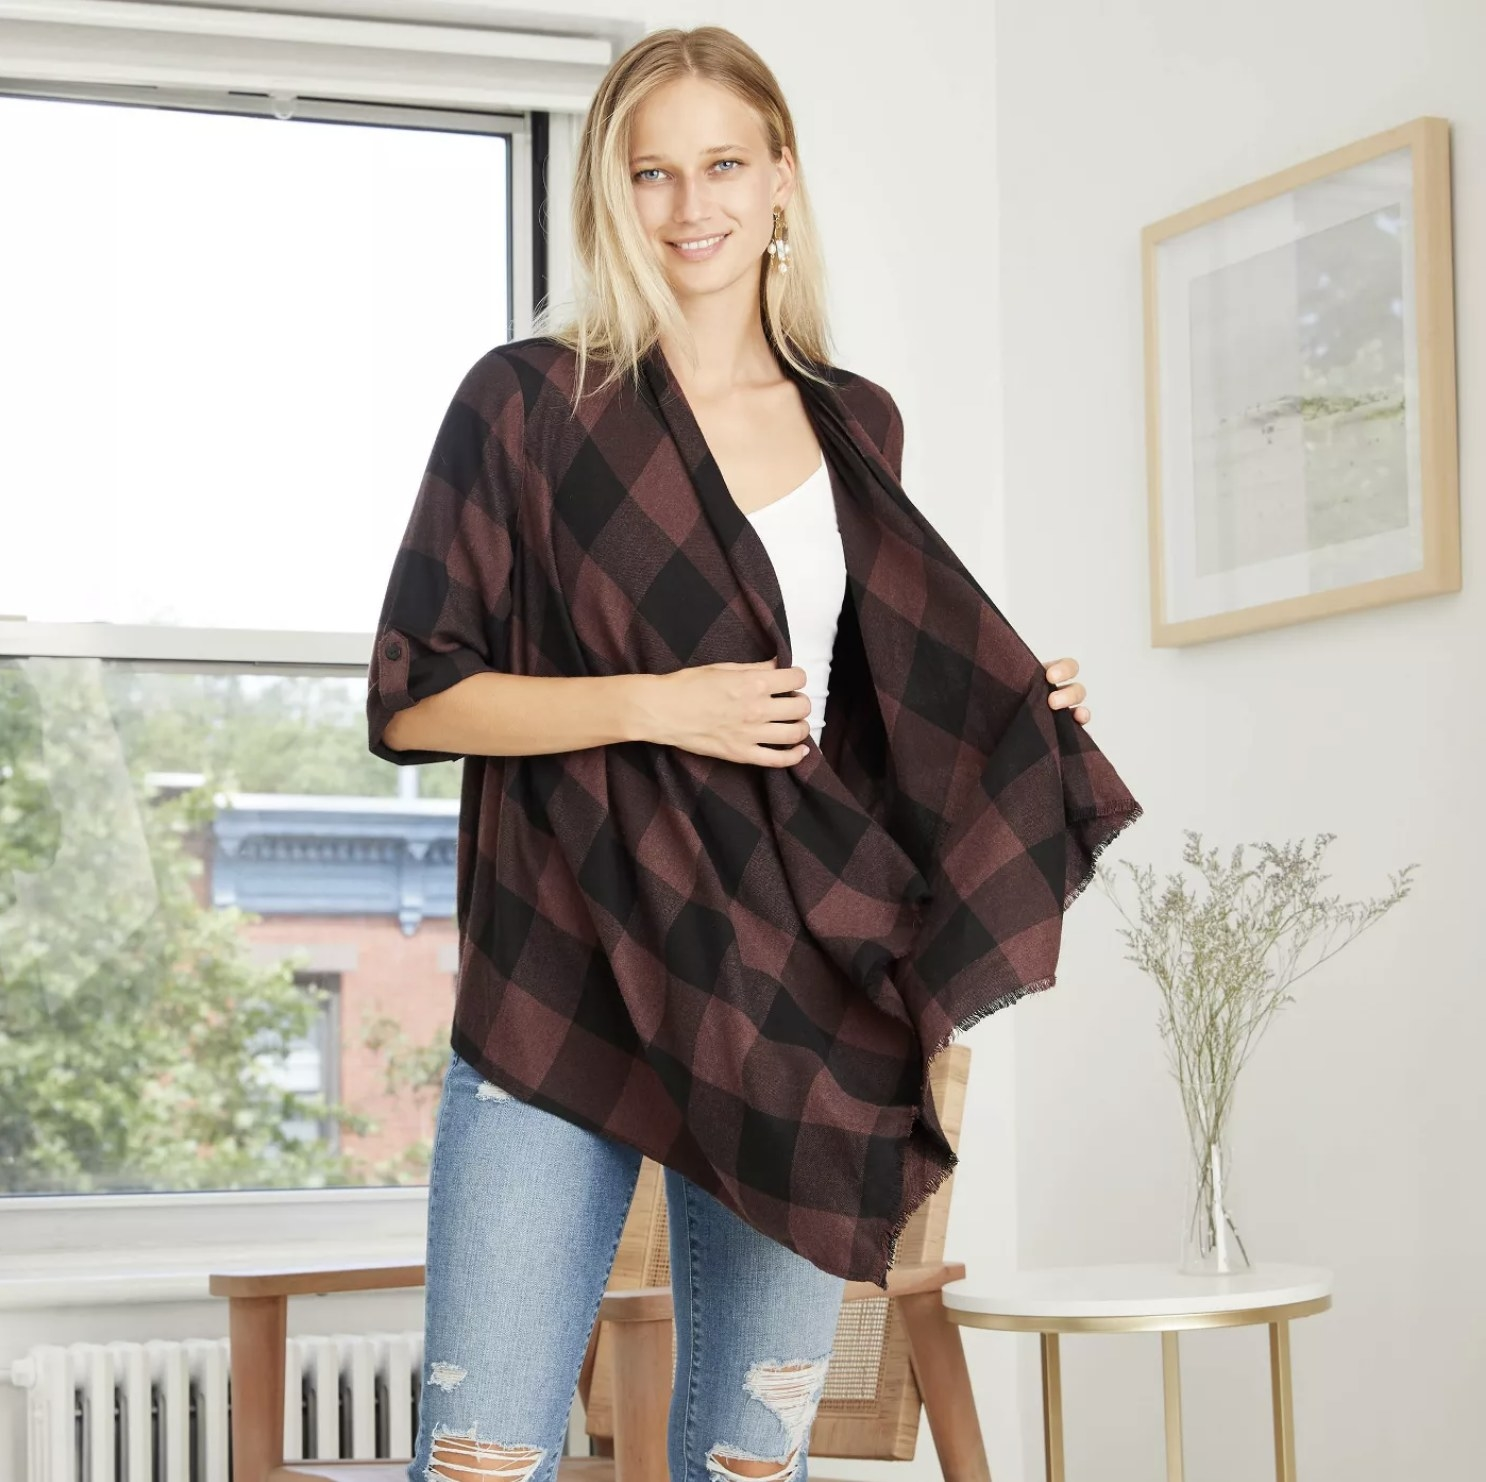 Model is wearing a dark red and charcoal grey flannel kimono over a white tank and light wash blue jeans